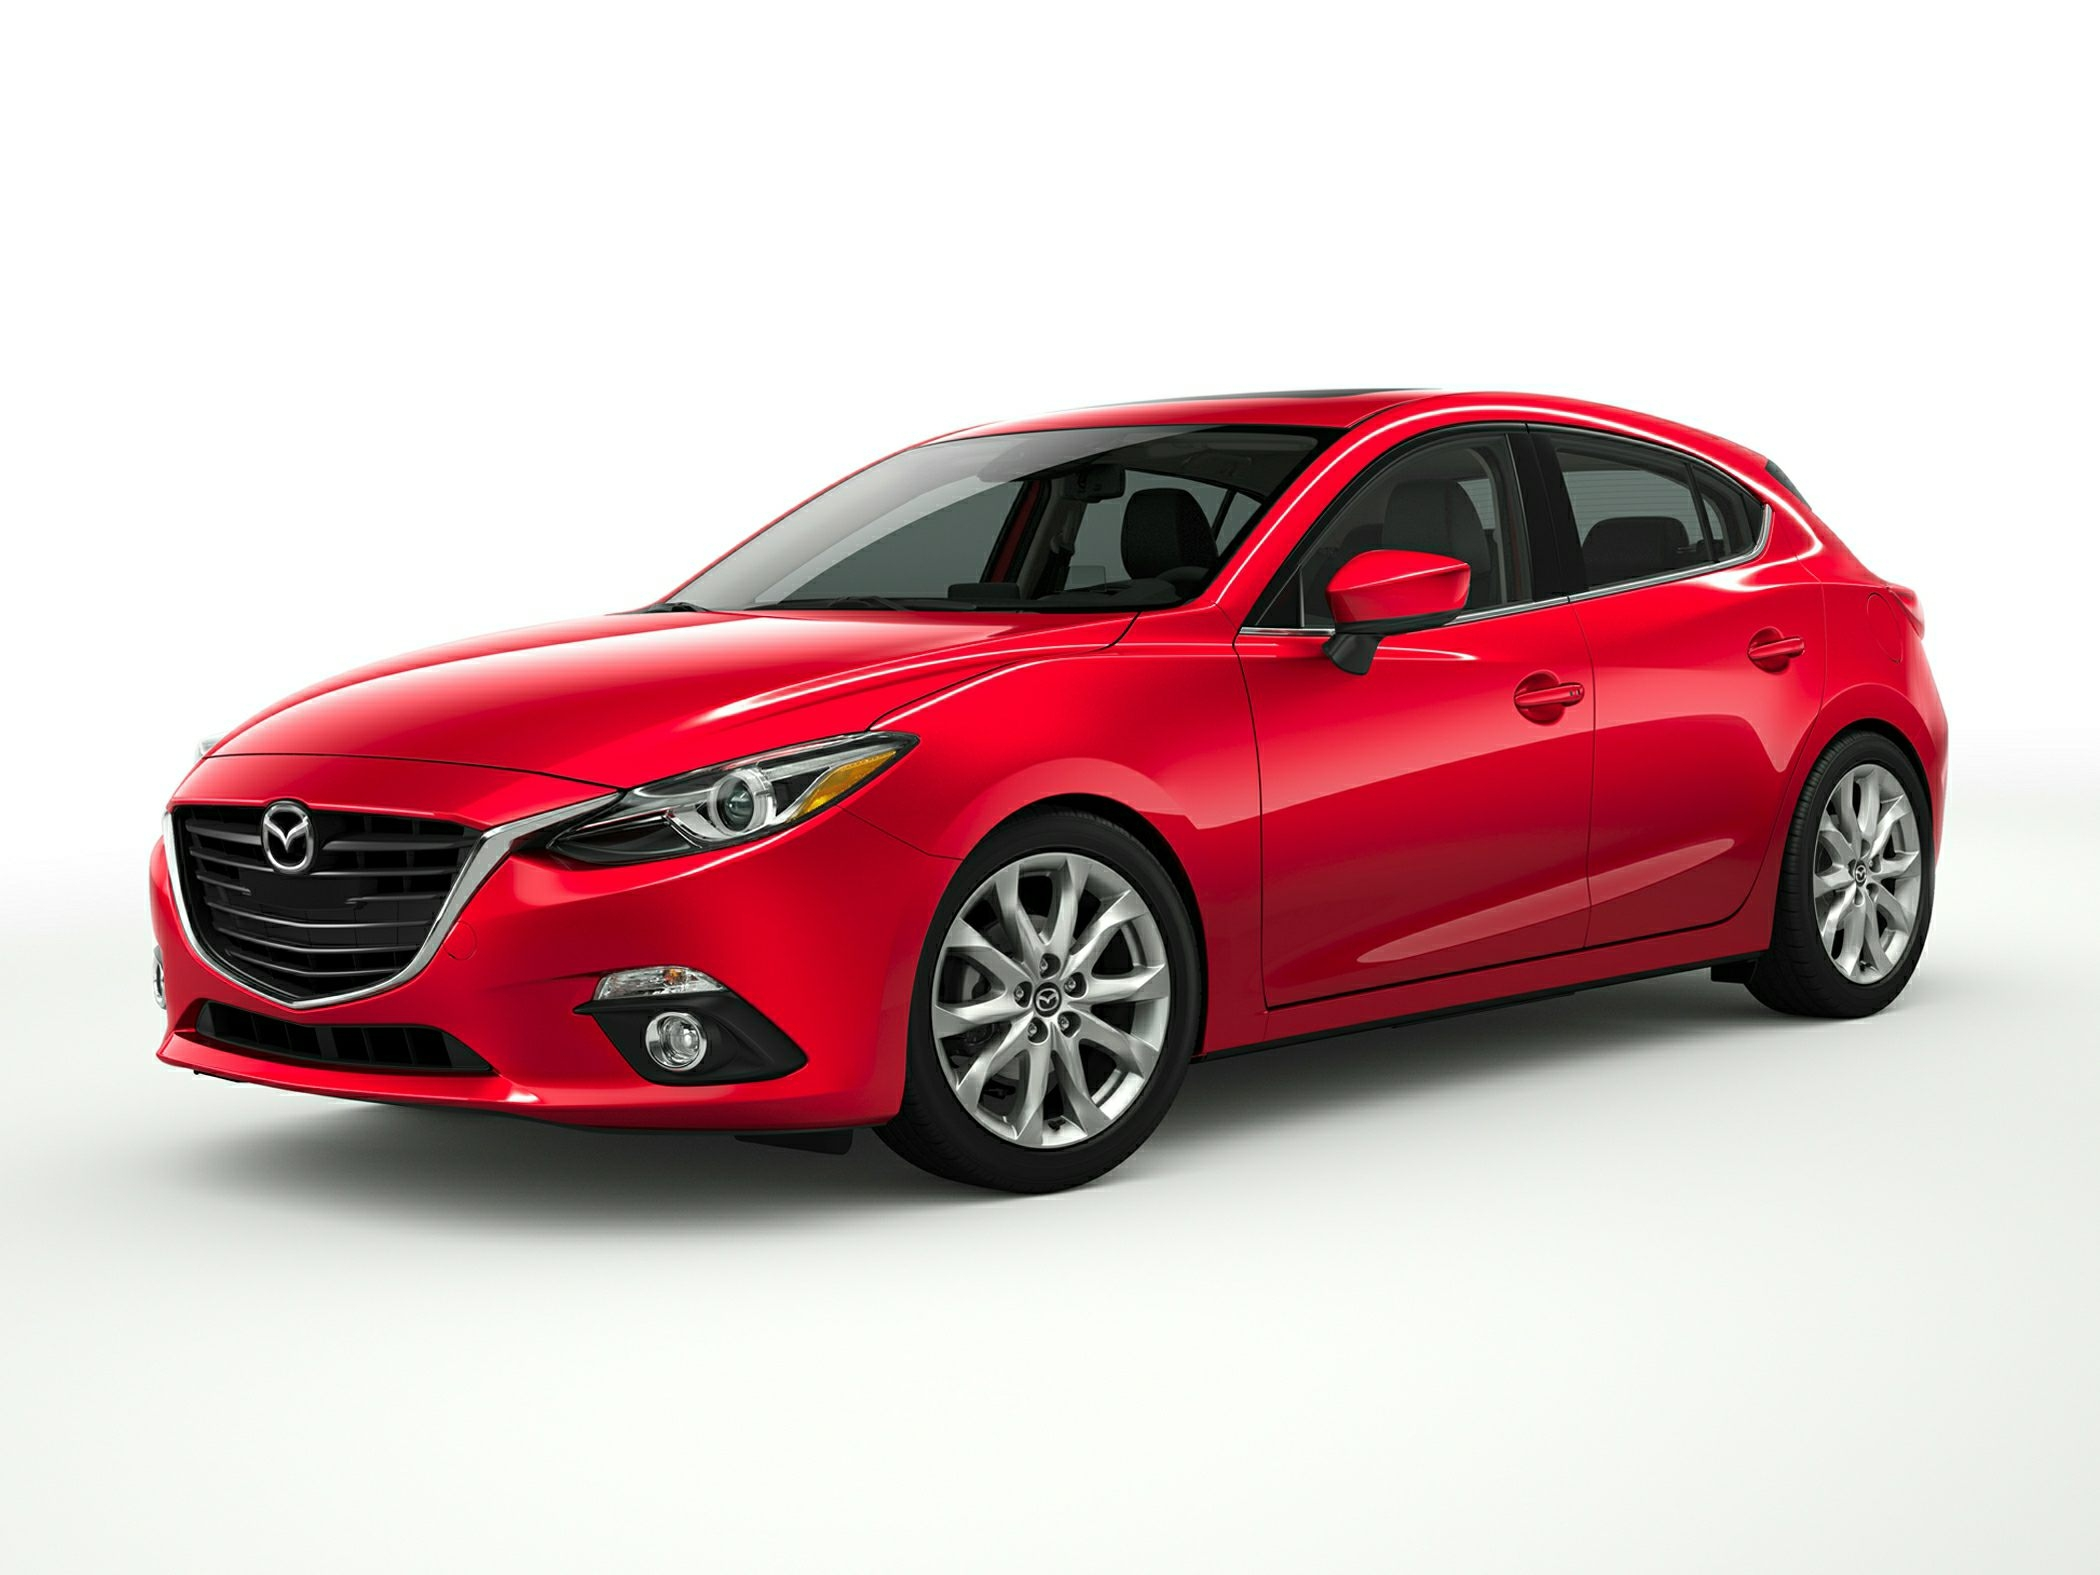 2014 mazda mazda3 price photos reviews amp features 2014 mazda3 invoice price